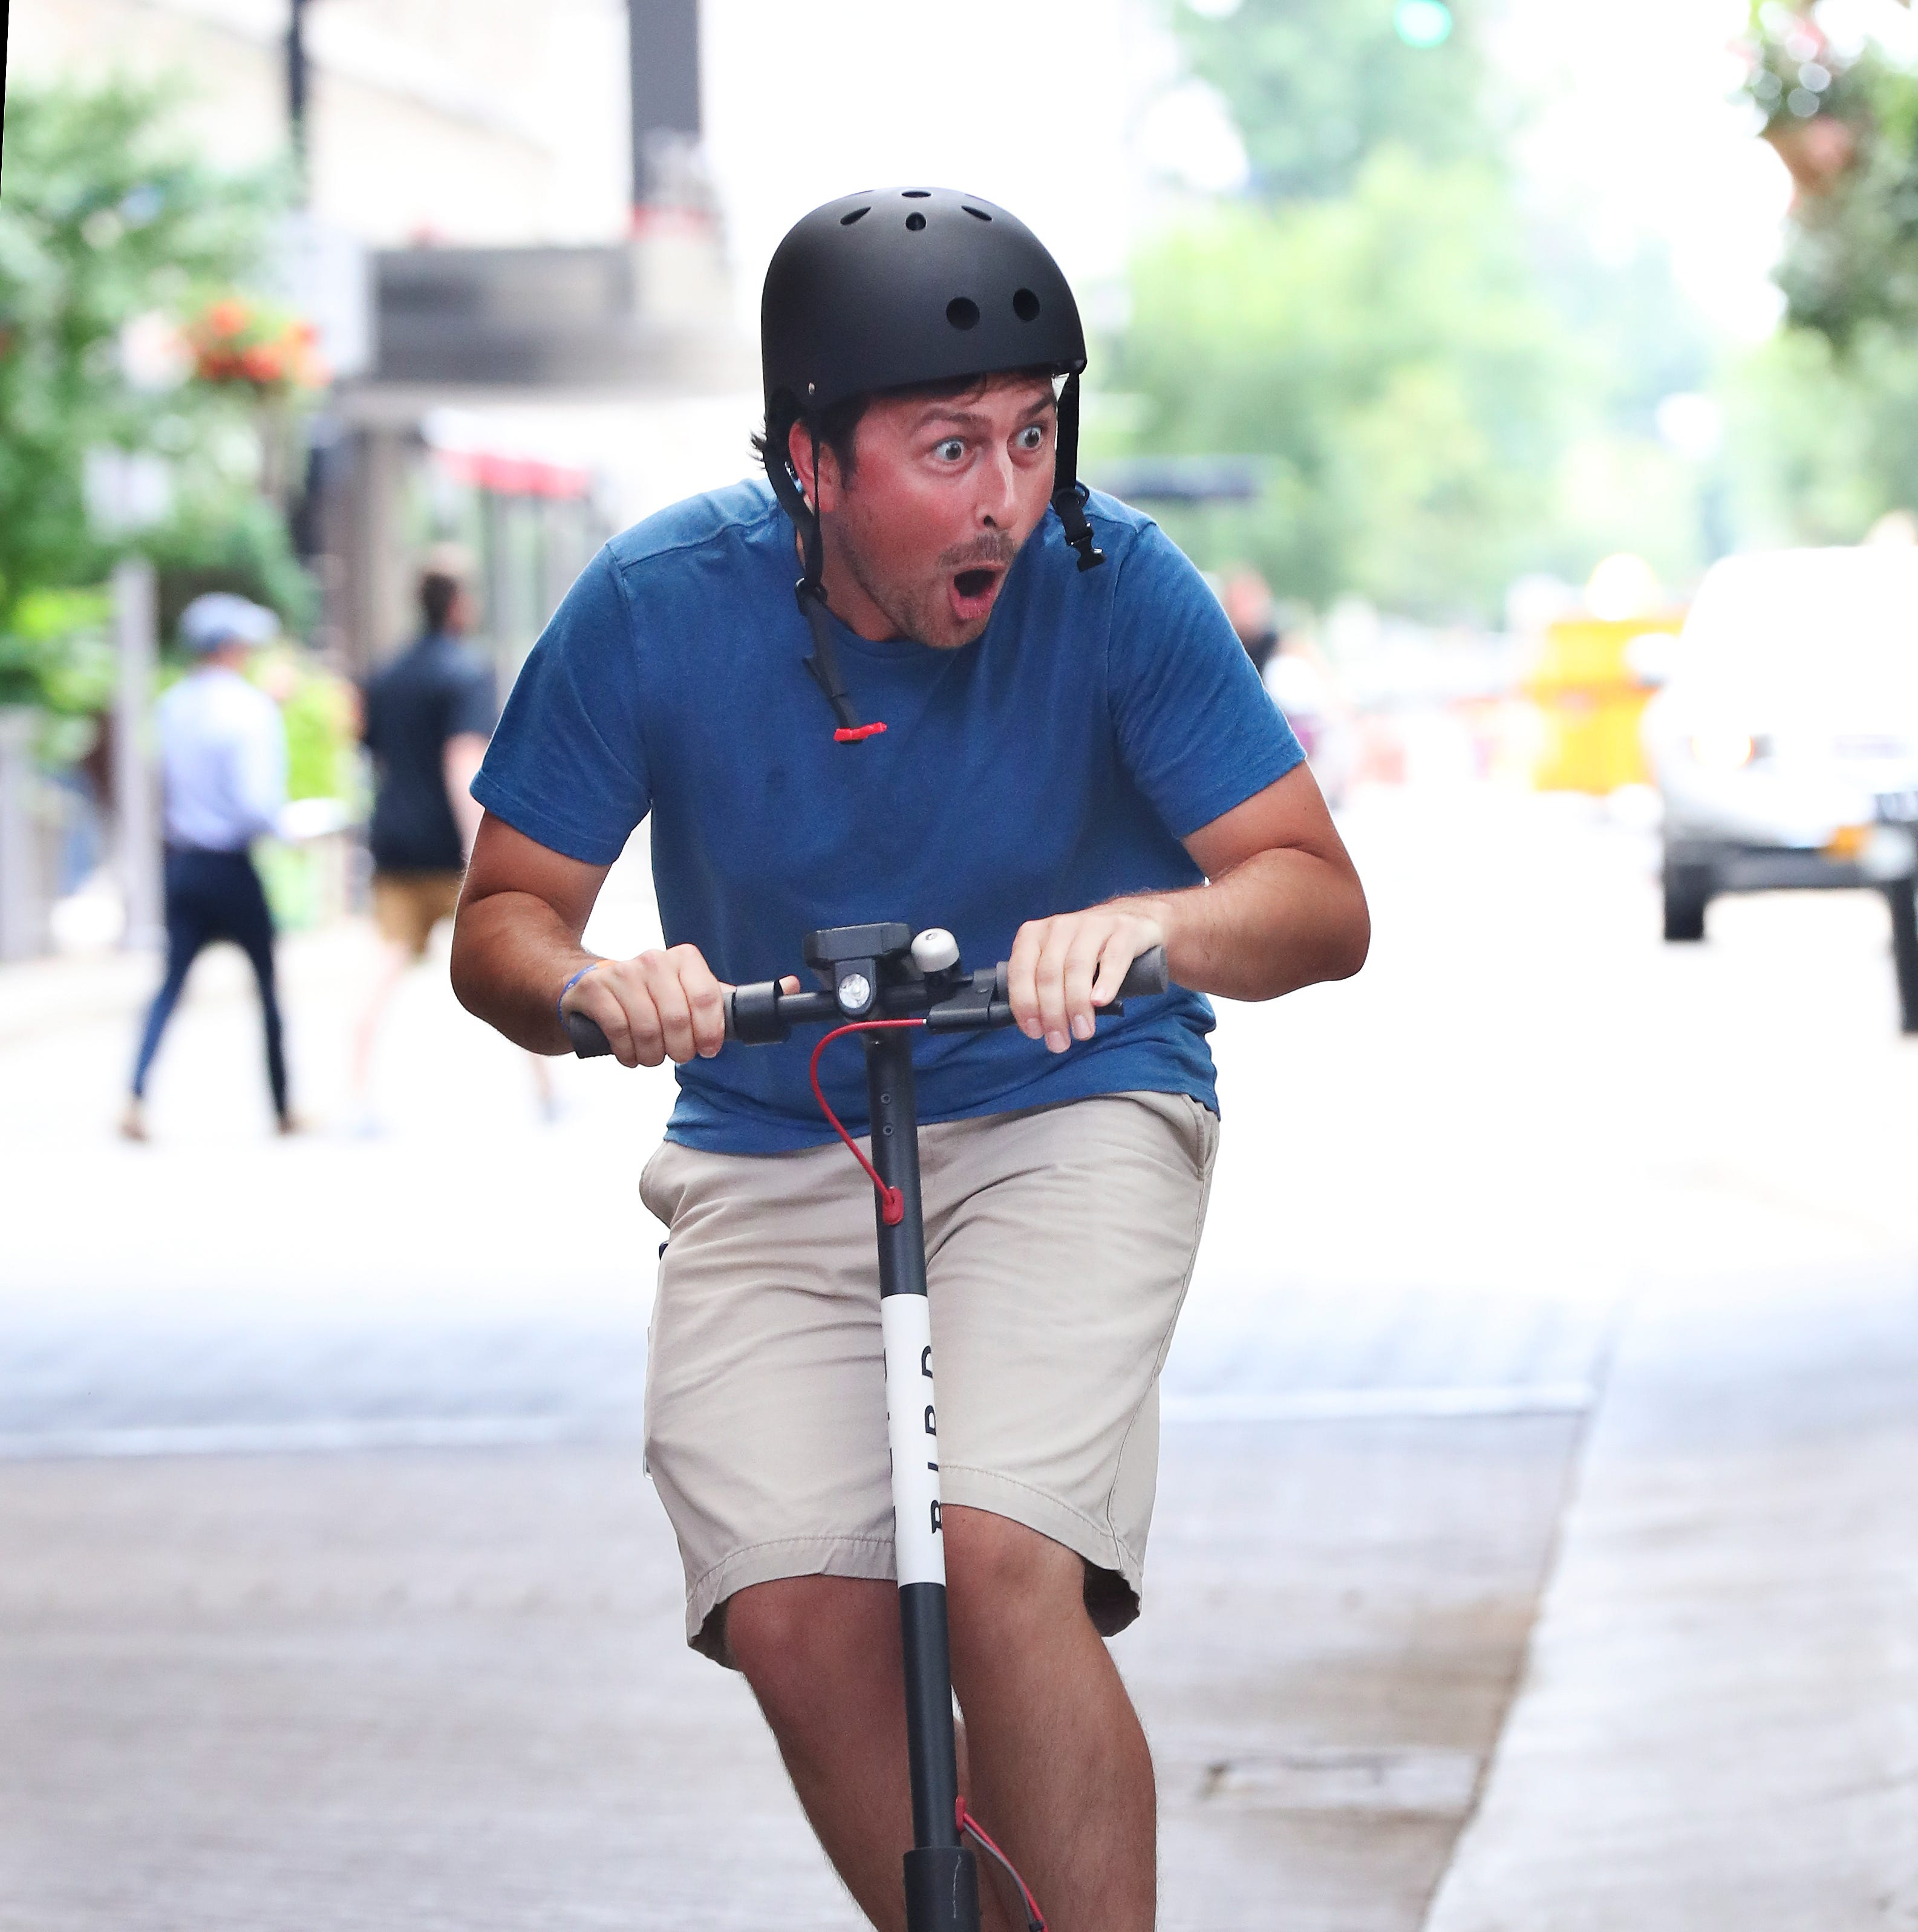 Toy or transport? Here's what people think of the dockless Bird scooters